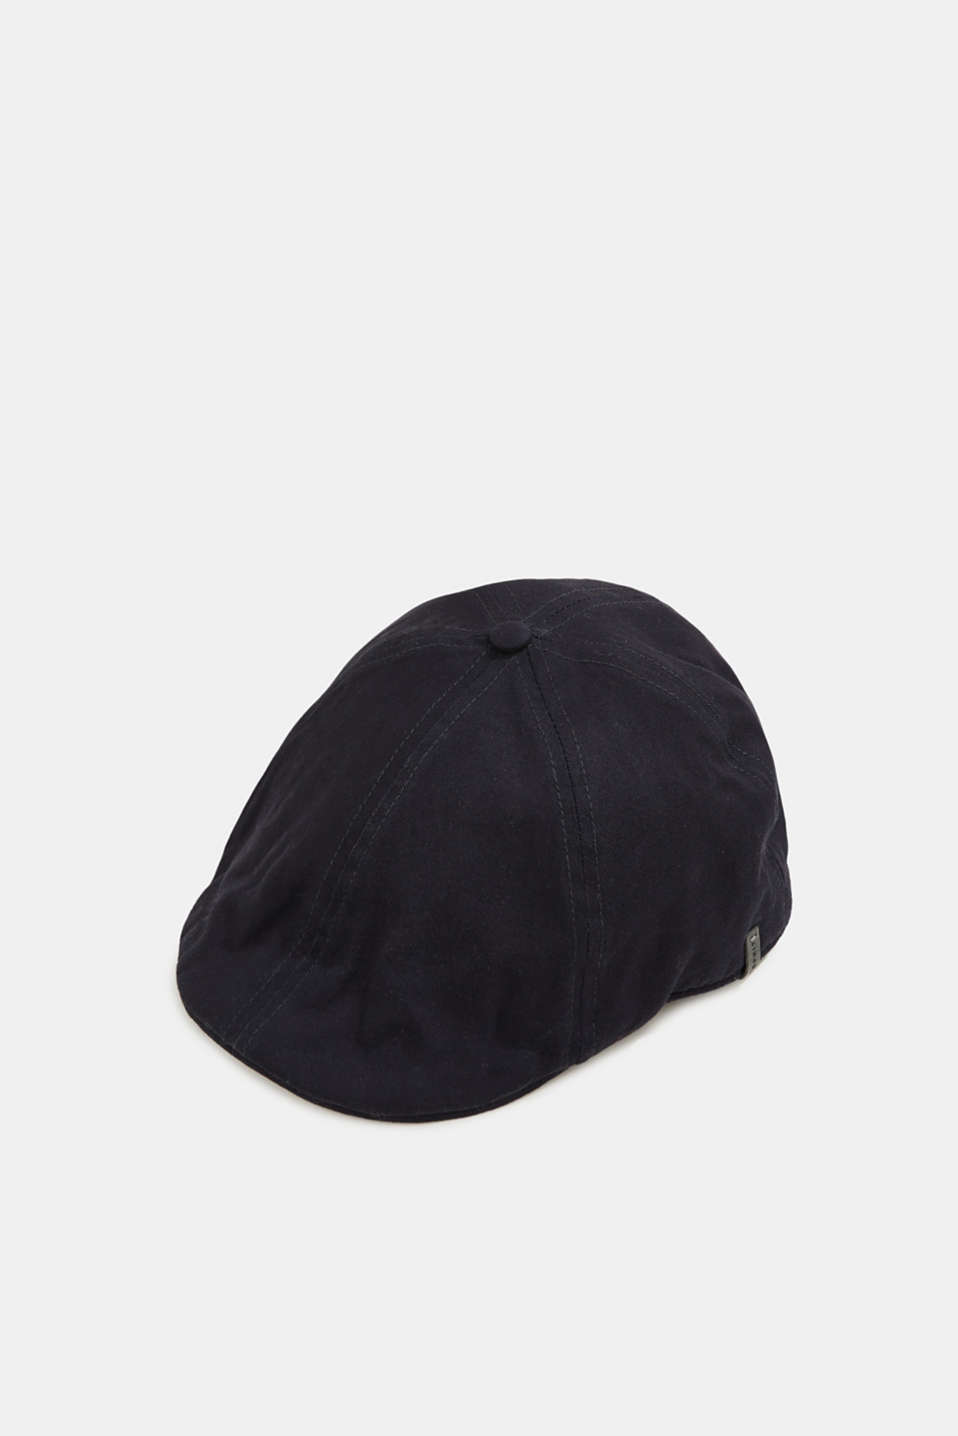 Esprit - Flat cap made of 100% cotton